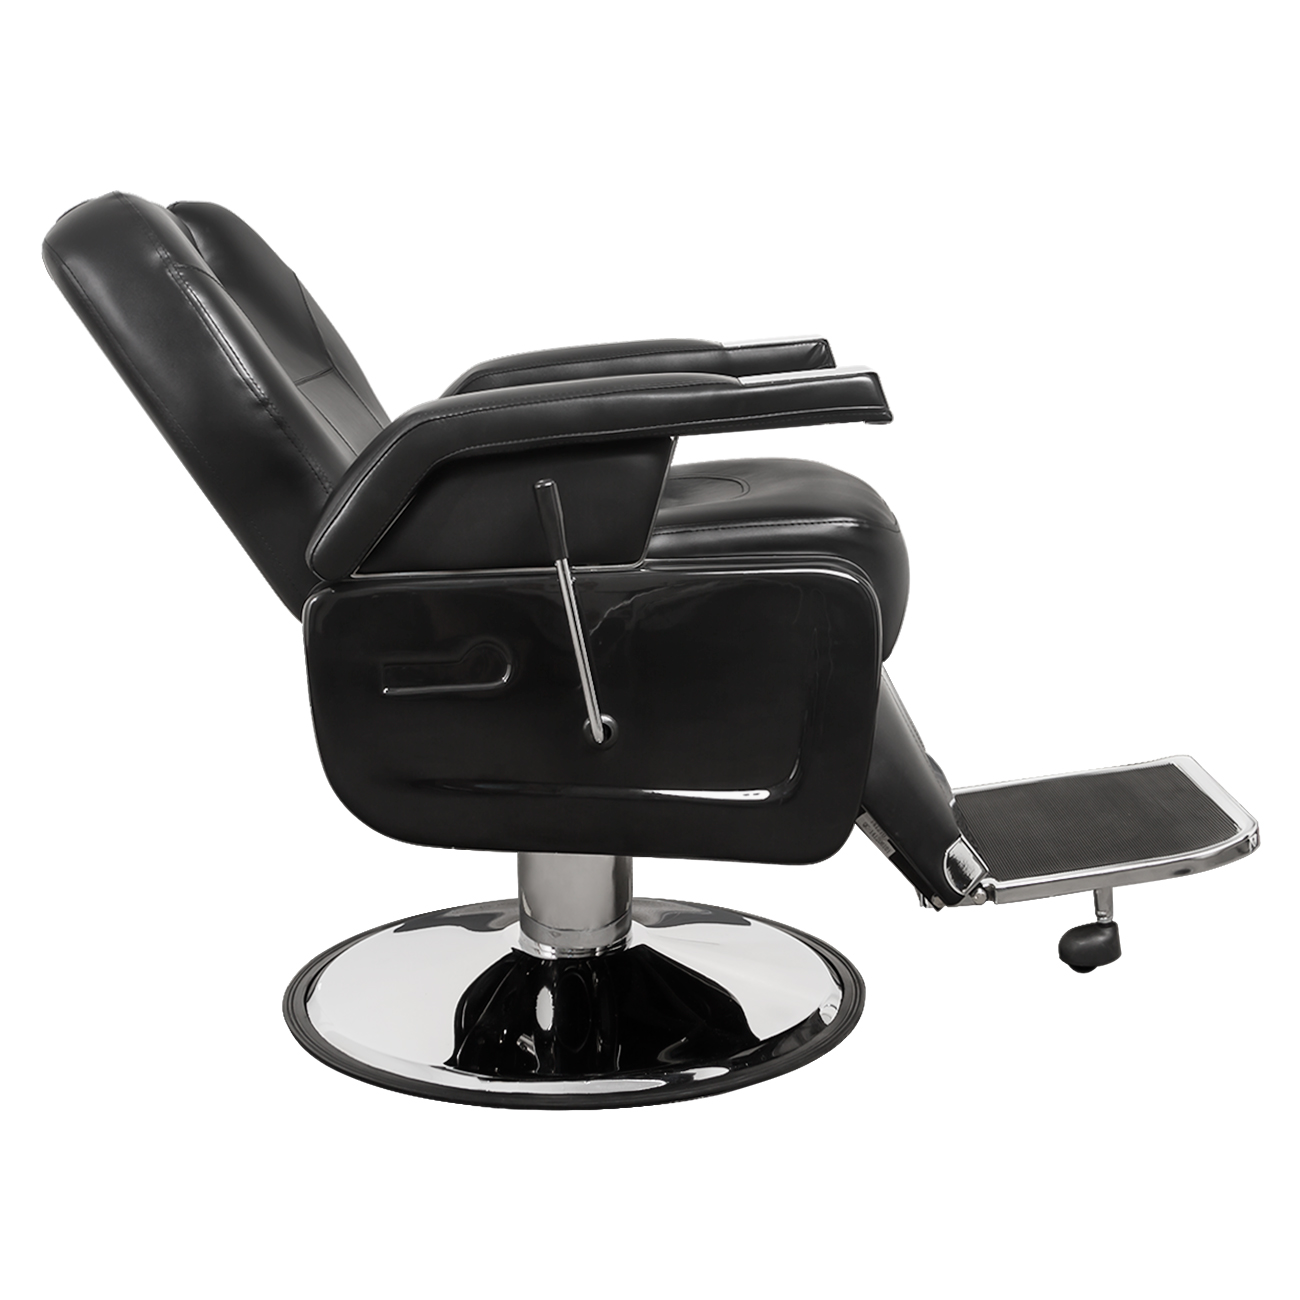 Carson Barber Chair alternative product image 2